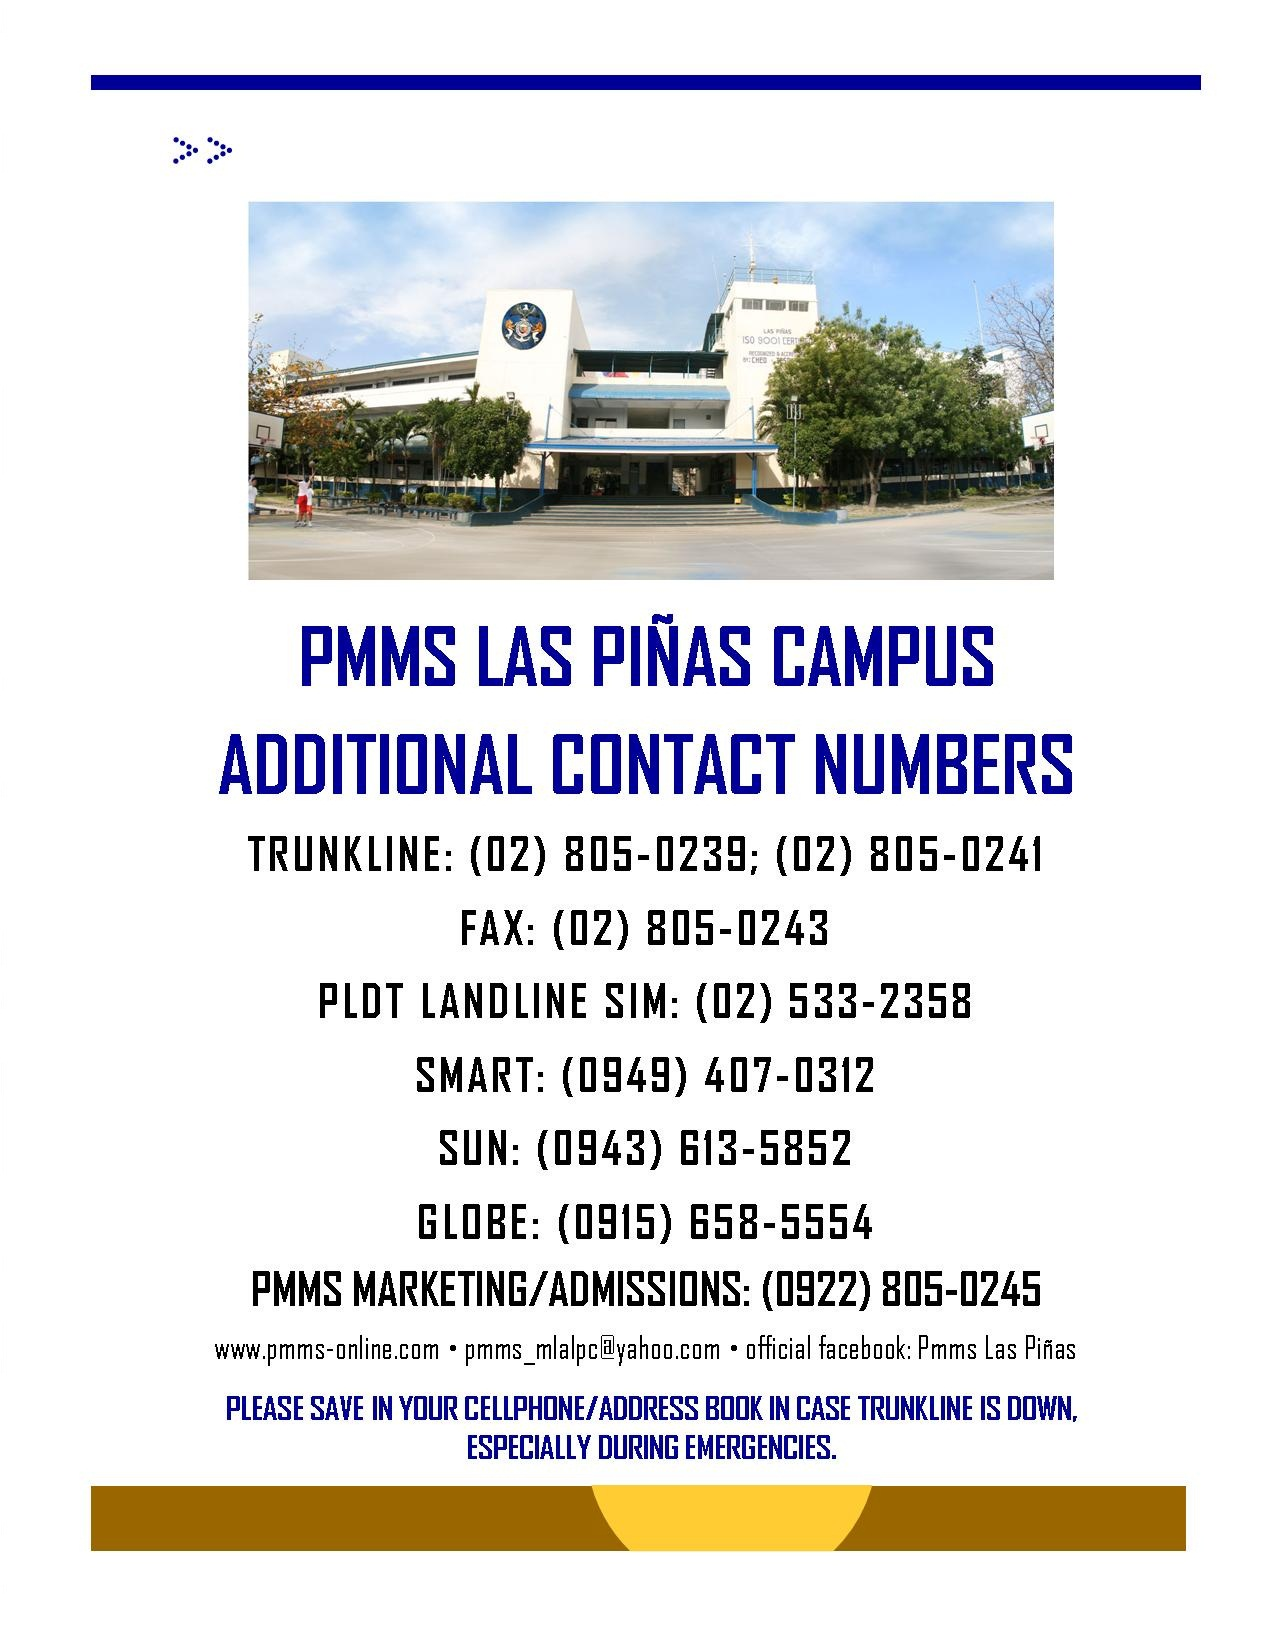 Las Piñas Campus: Additional Contact Numbers